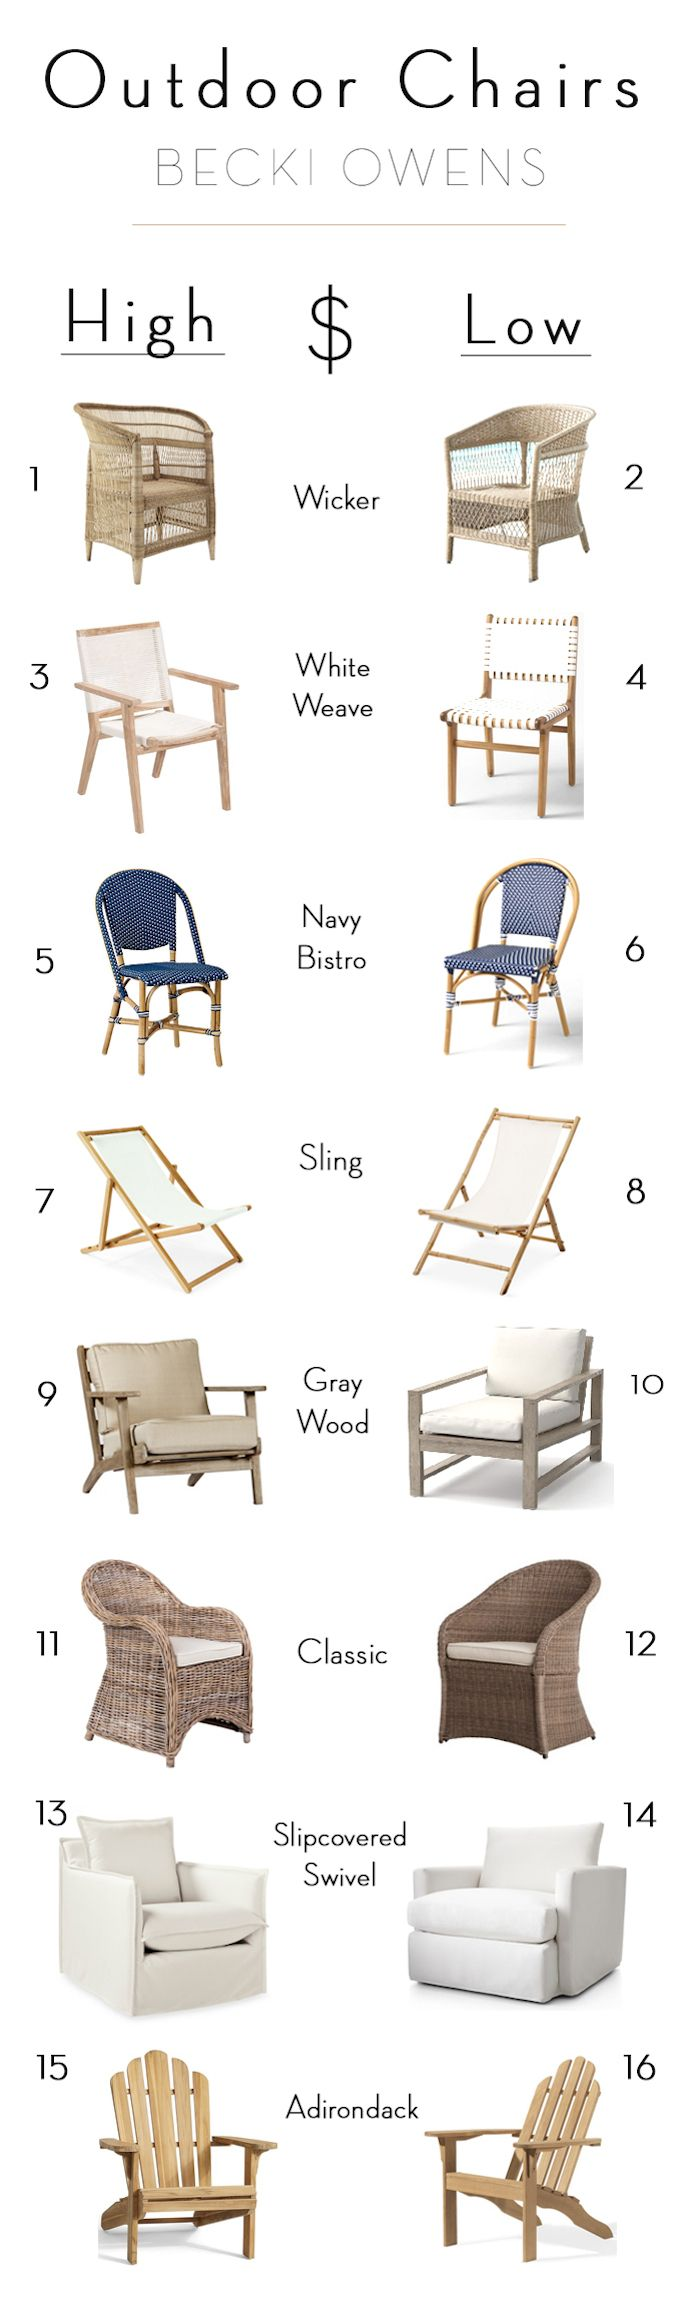 BECKI OWENS- Splurge and Save: Outdoor Chairs